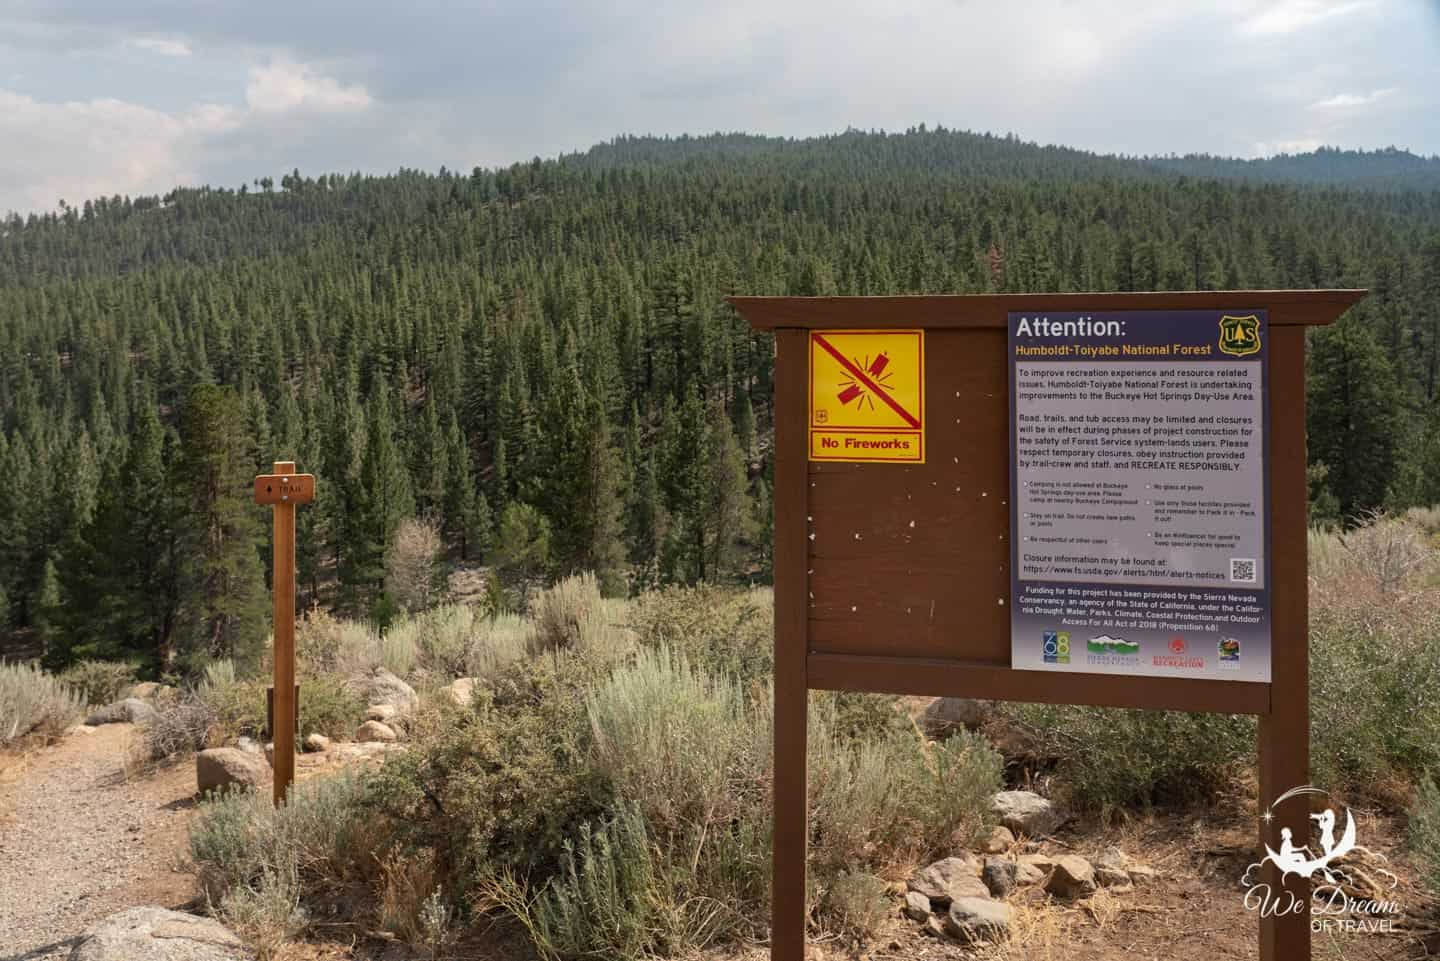 Entrance sign for the springs and trail.